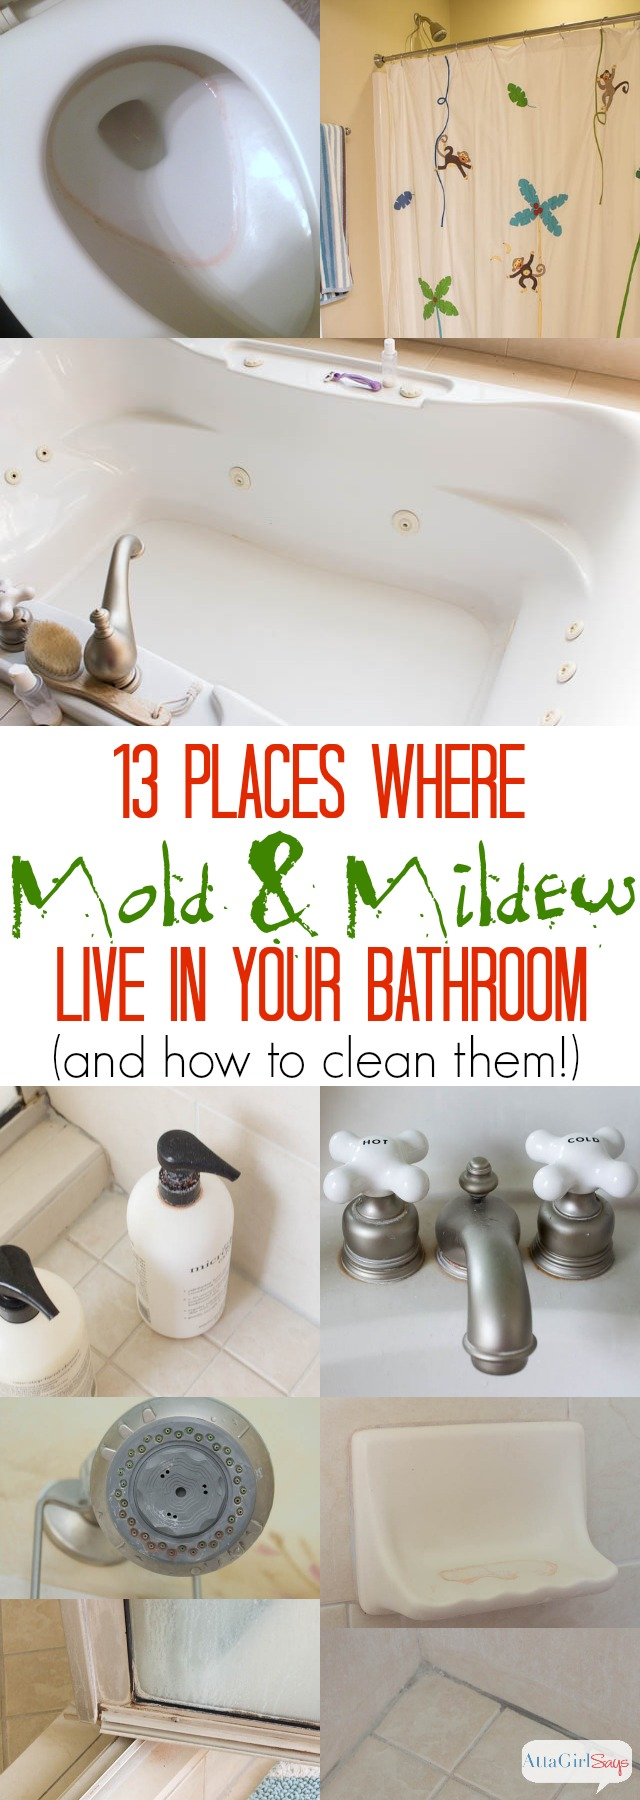 13 Places Where Mold & Mildew Live in Your Bathroom & How to Clean Them: All homes have mold and mildew. Under the right conditions, like a steamy bathroom,  mold and mildew can grow in as little as 48 hours. Learn how to clean mold without scrubbing. These are my favorite tools and tricks to get rid of mold and mildew in the bathroom, once and for all.